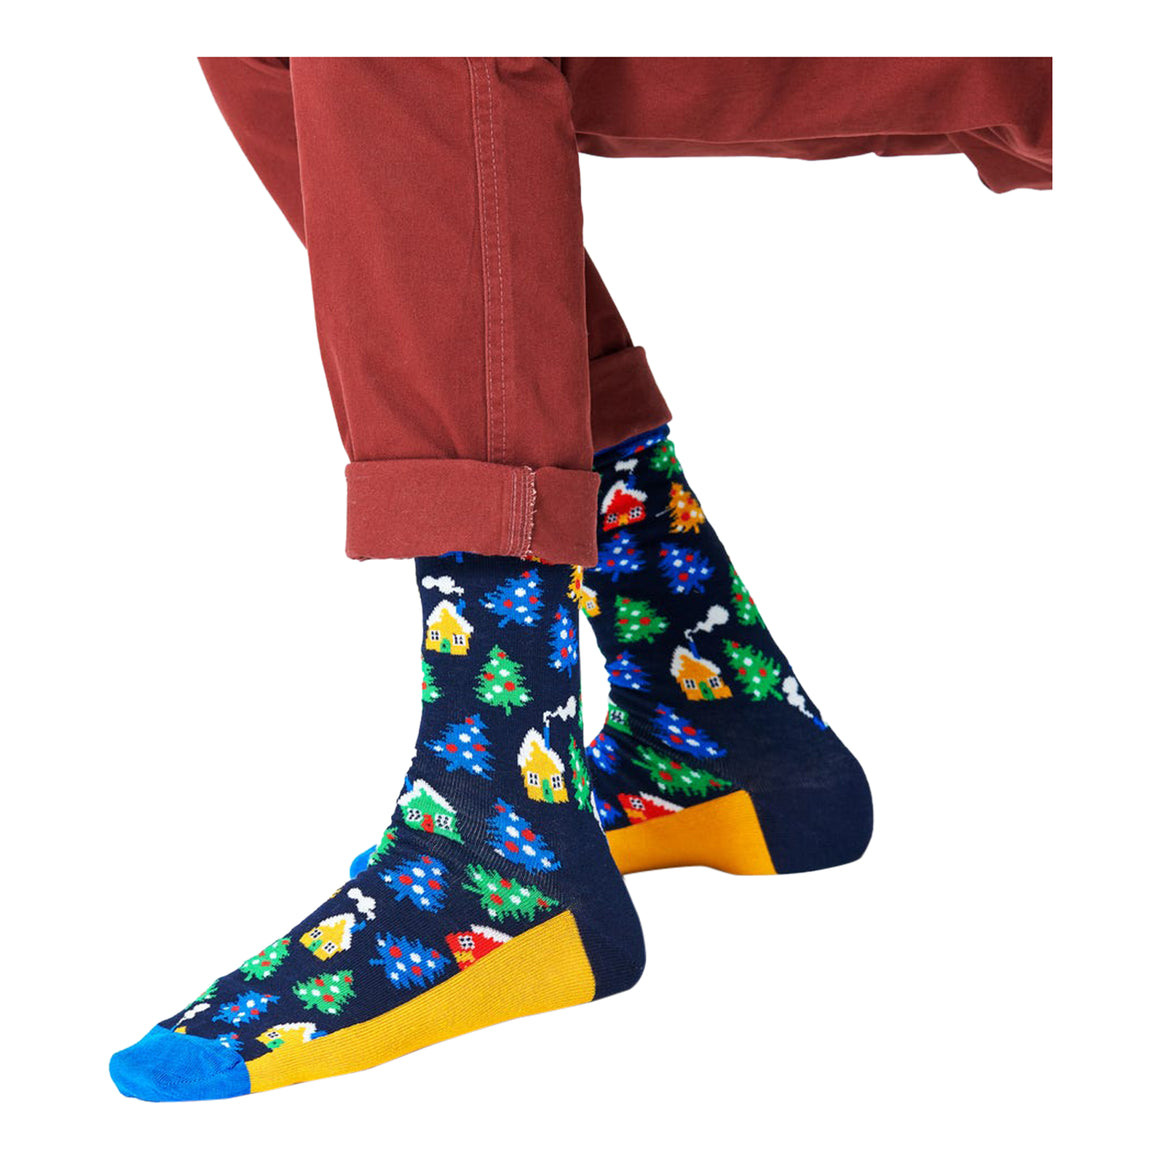 Winterland Socks for Men in Navy